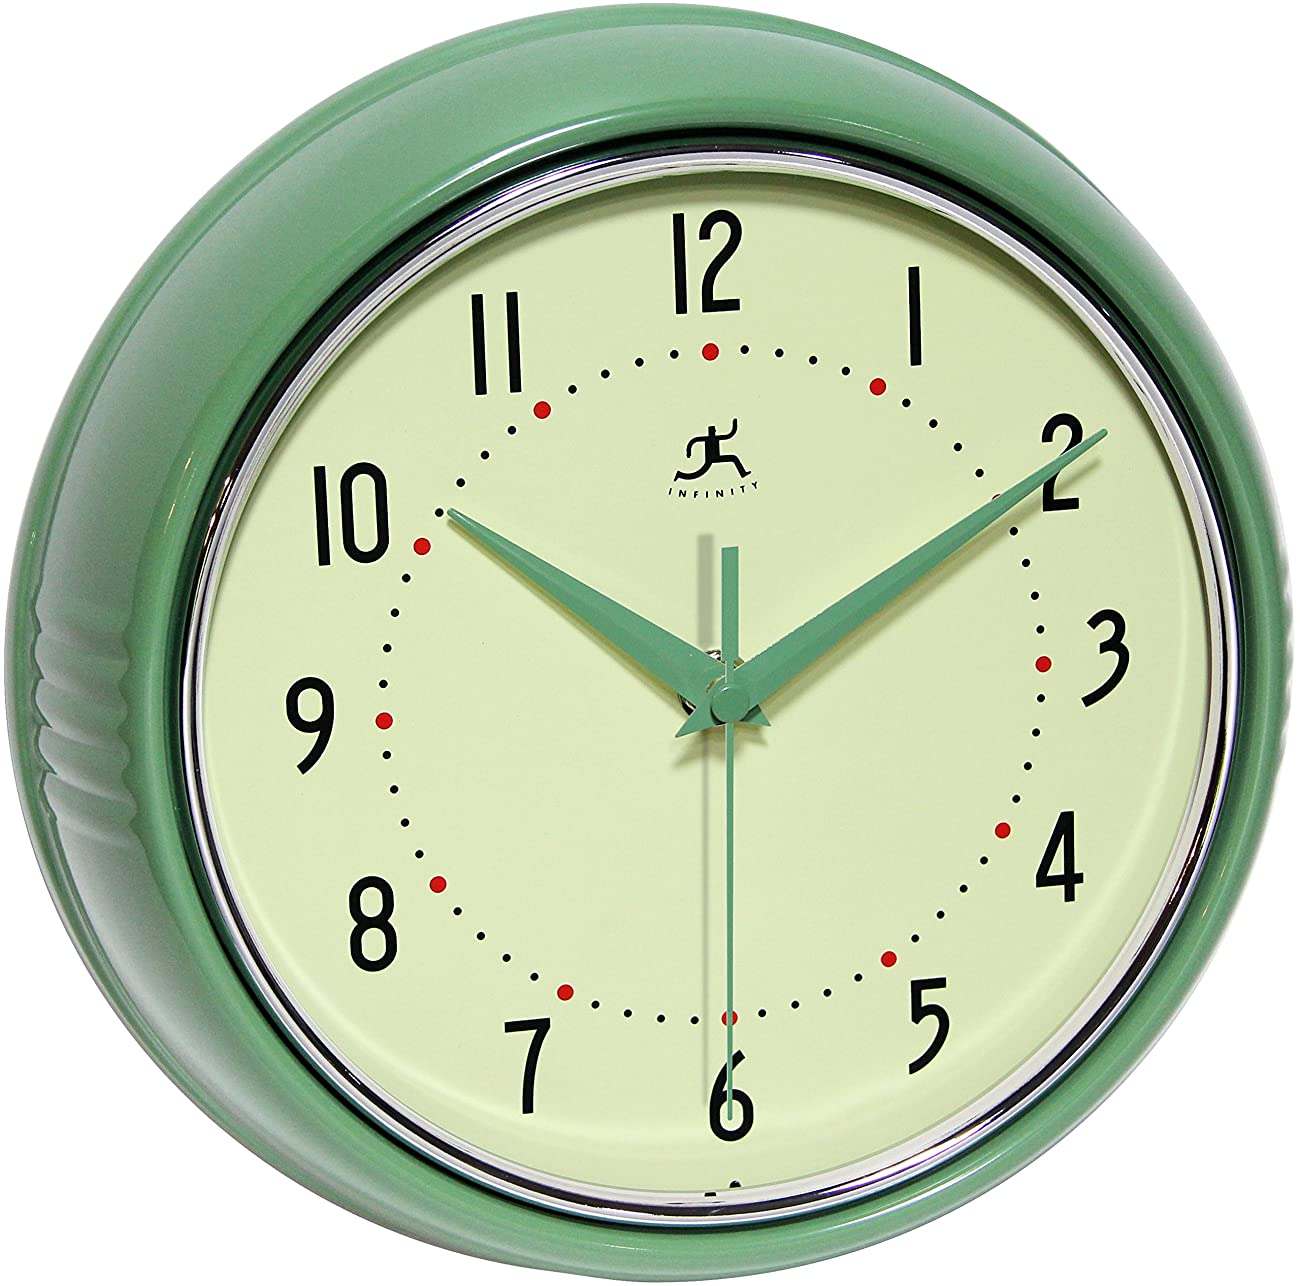 Infinity Instruments Retro 9-1/2-Inch Round Metal Wall Clock, Green 0